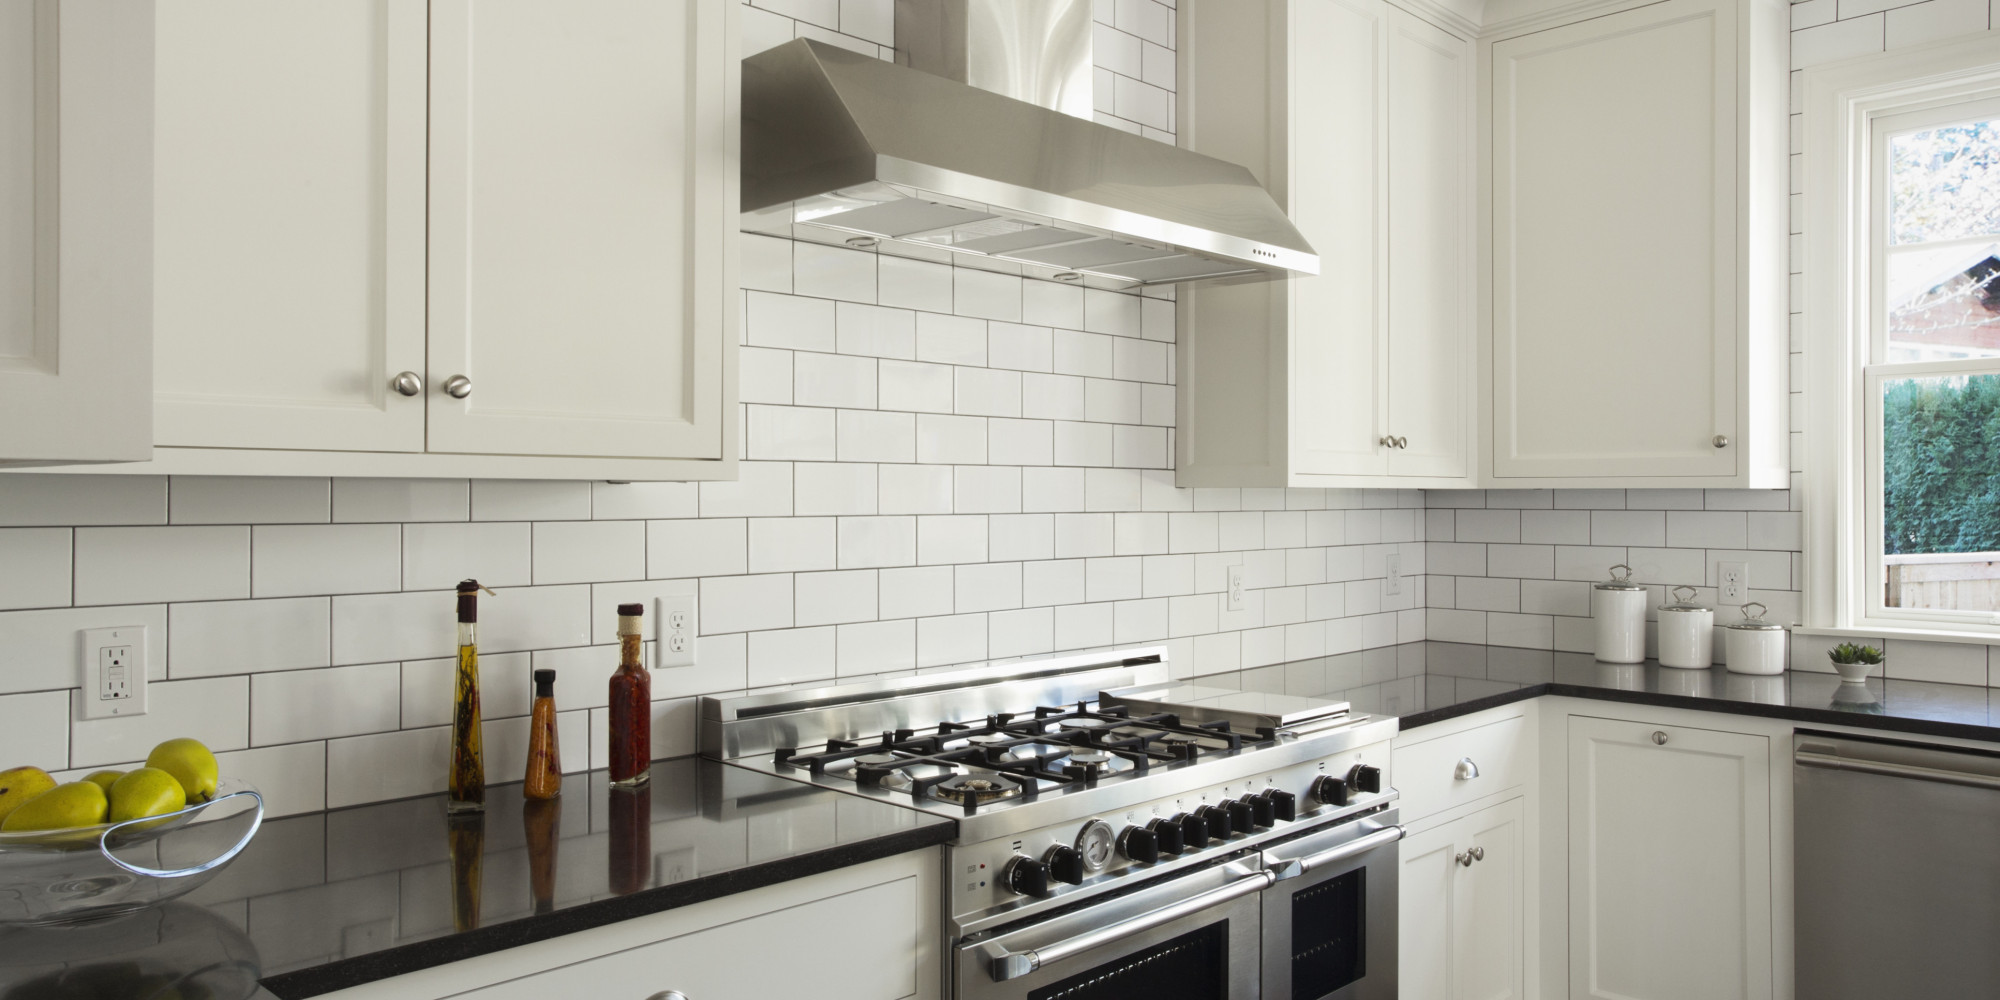 Kitchen Remodel Makeovers: 20 Great Before & After Transformations For ...